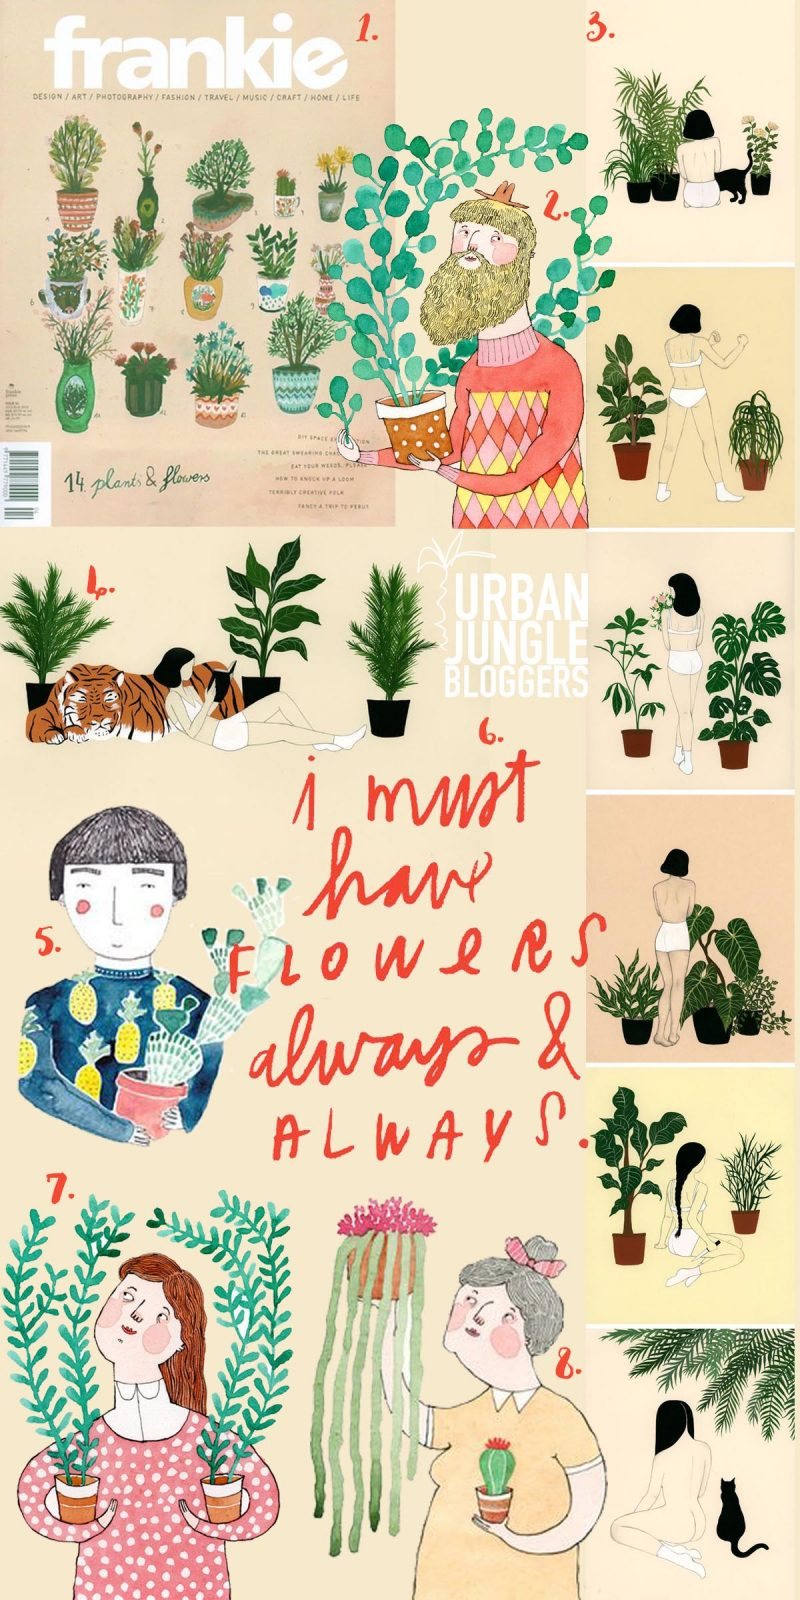 Urban Jungle Bloggers Plants & Art